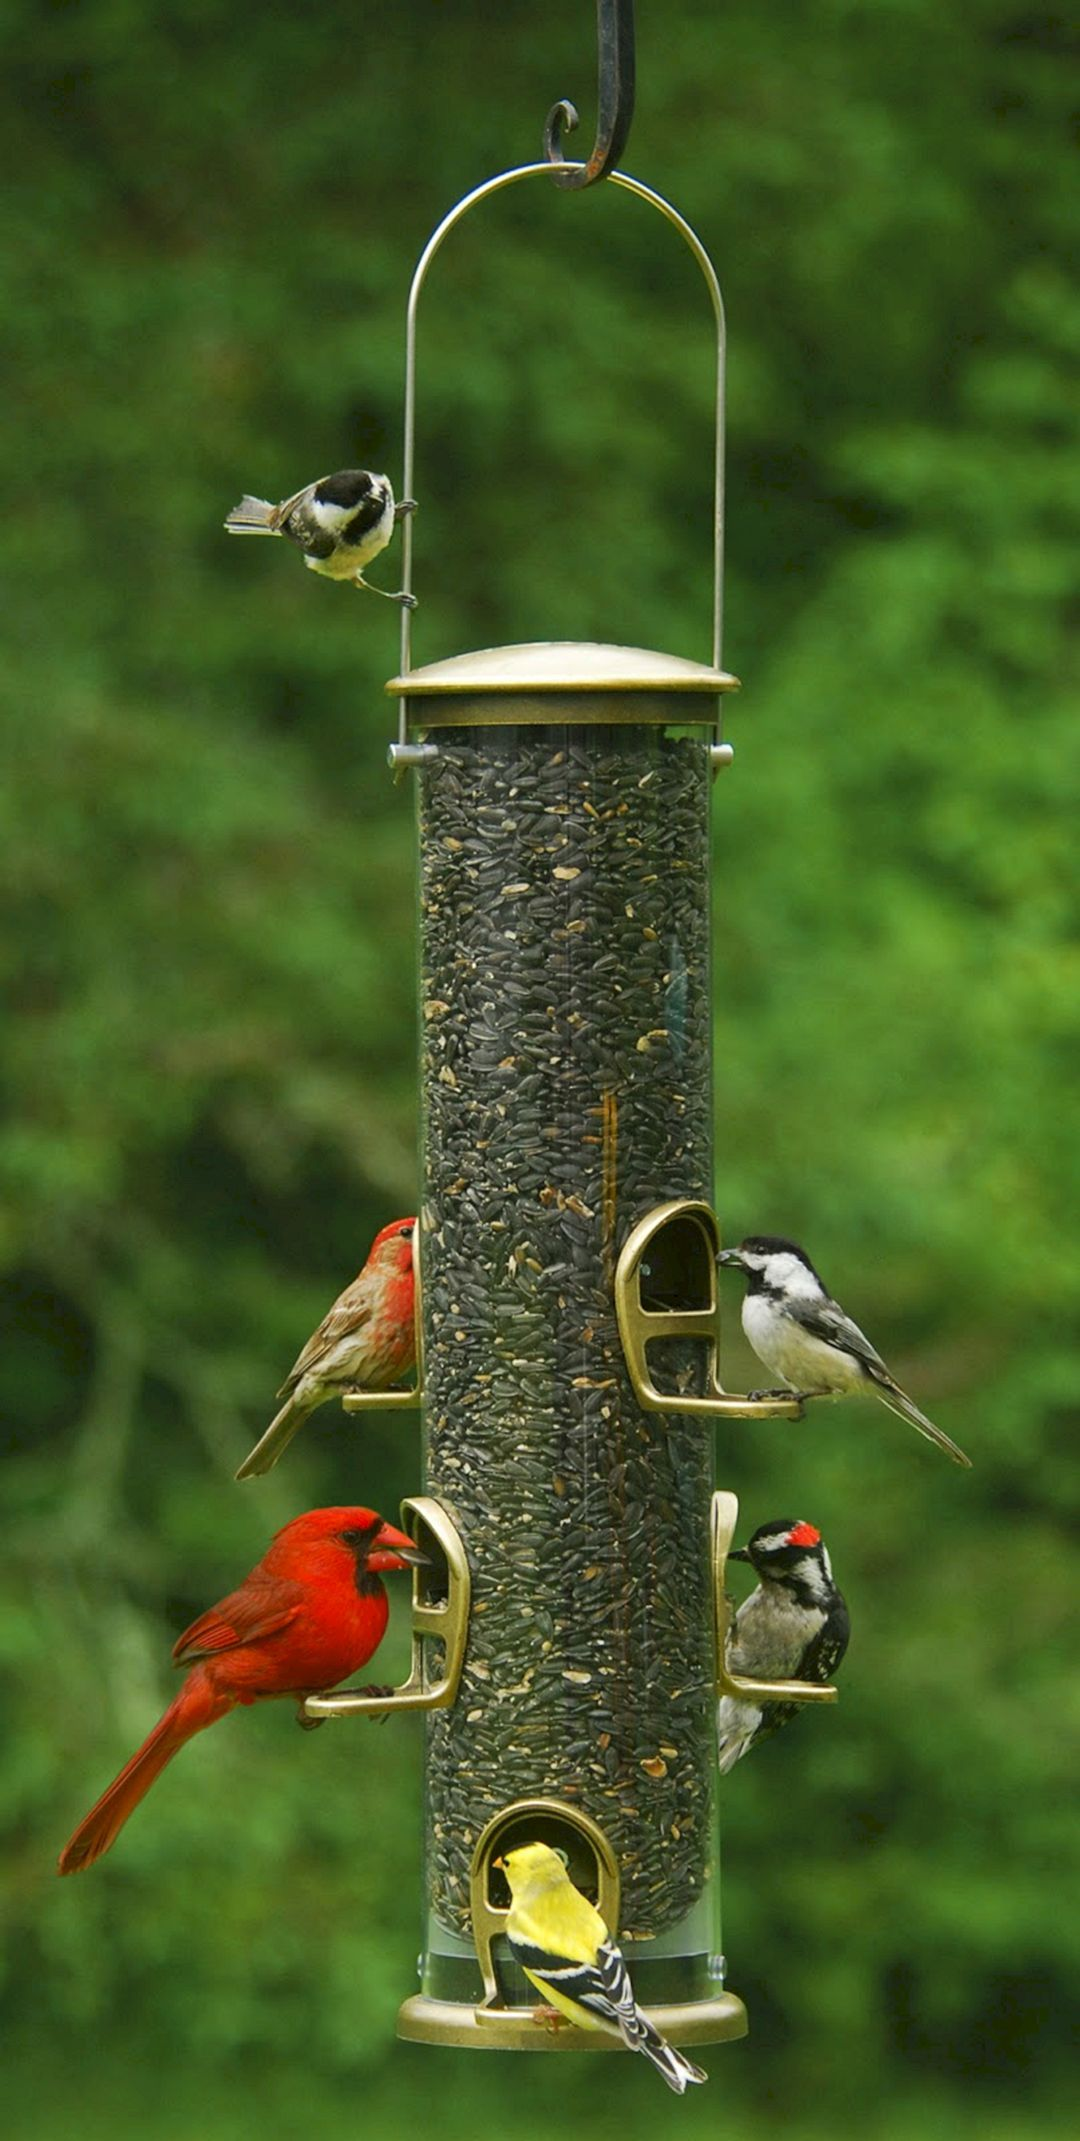 40 awesome bird feeders ideas that will fill your